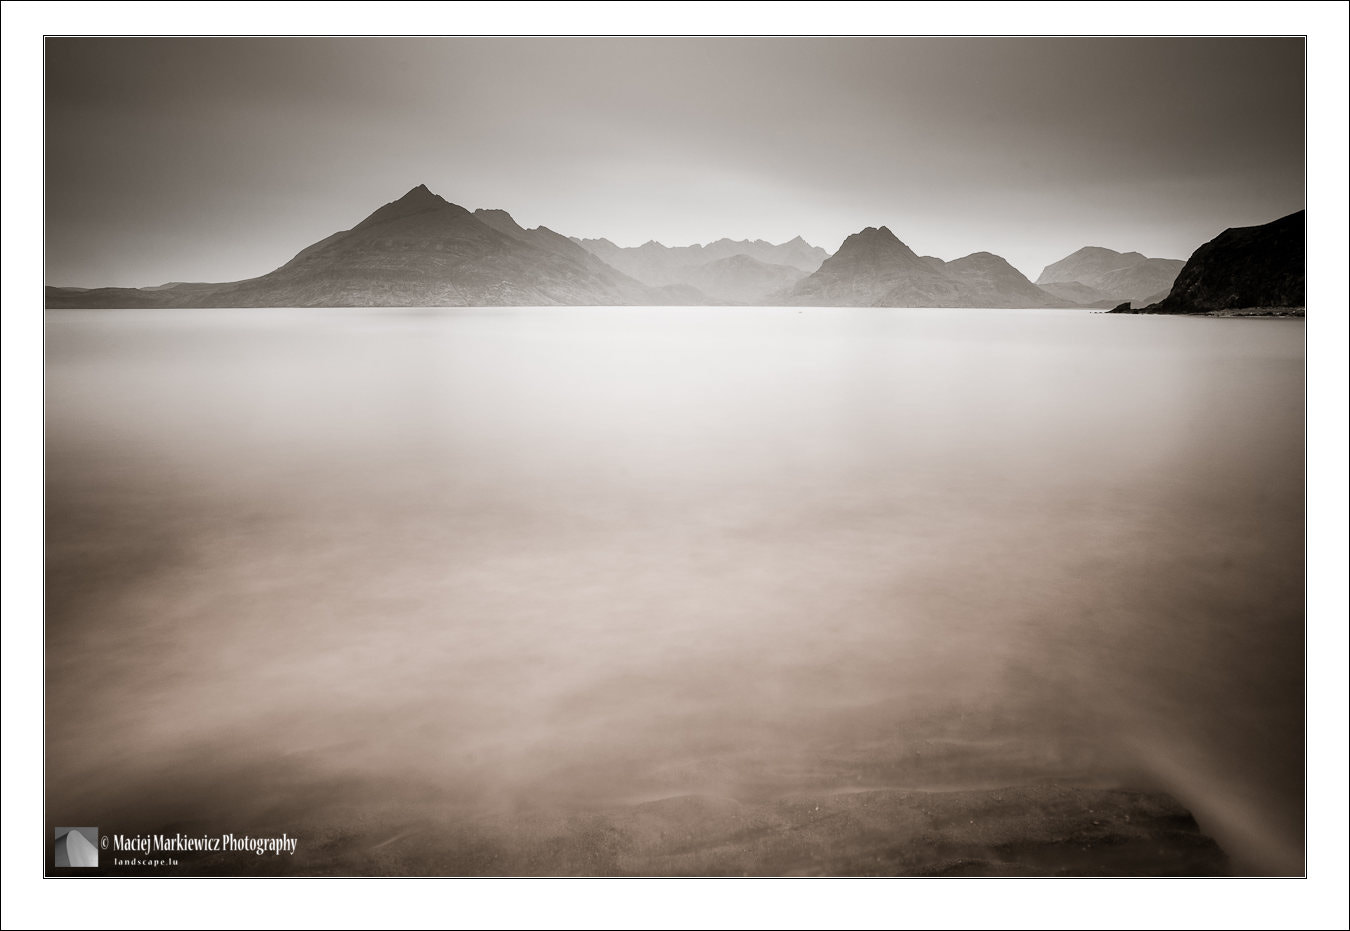 Photograph The Cuillins by Maciej Markiewicz on 500px